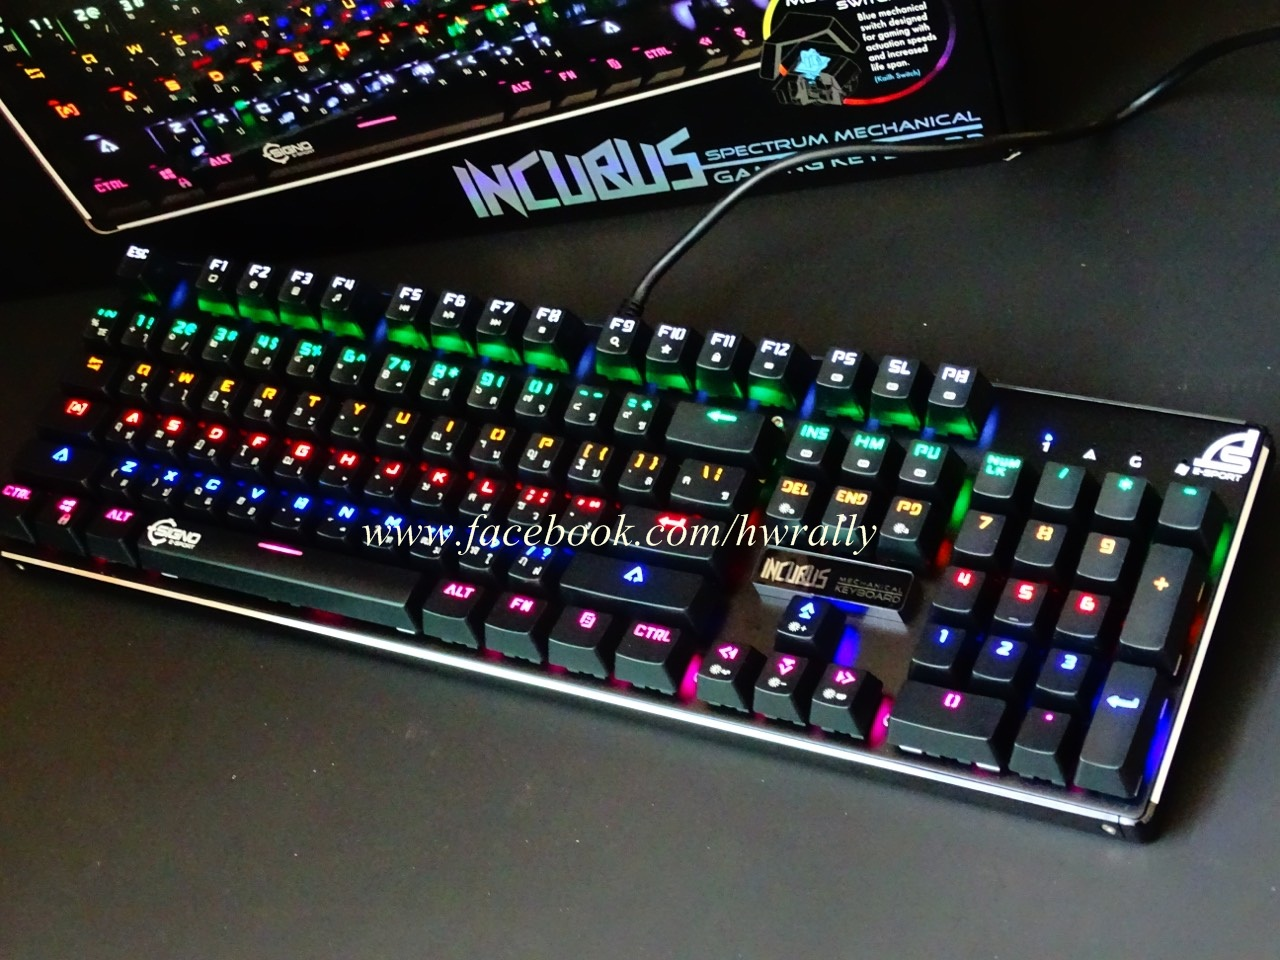 Signo KB-789 Machanical Switch Kailh Keyboard RGB